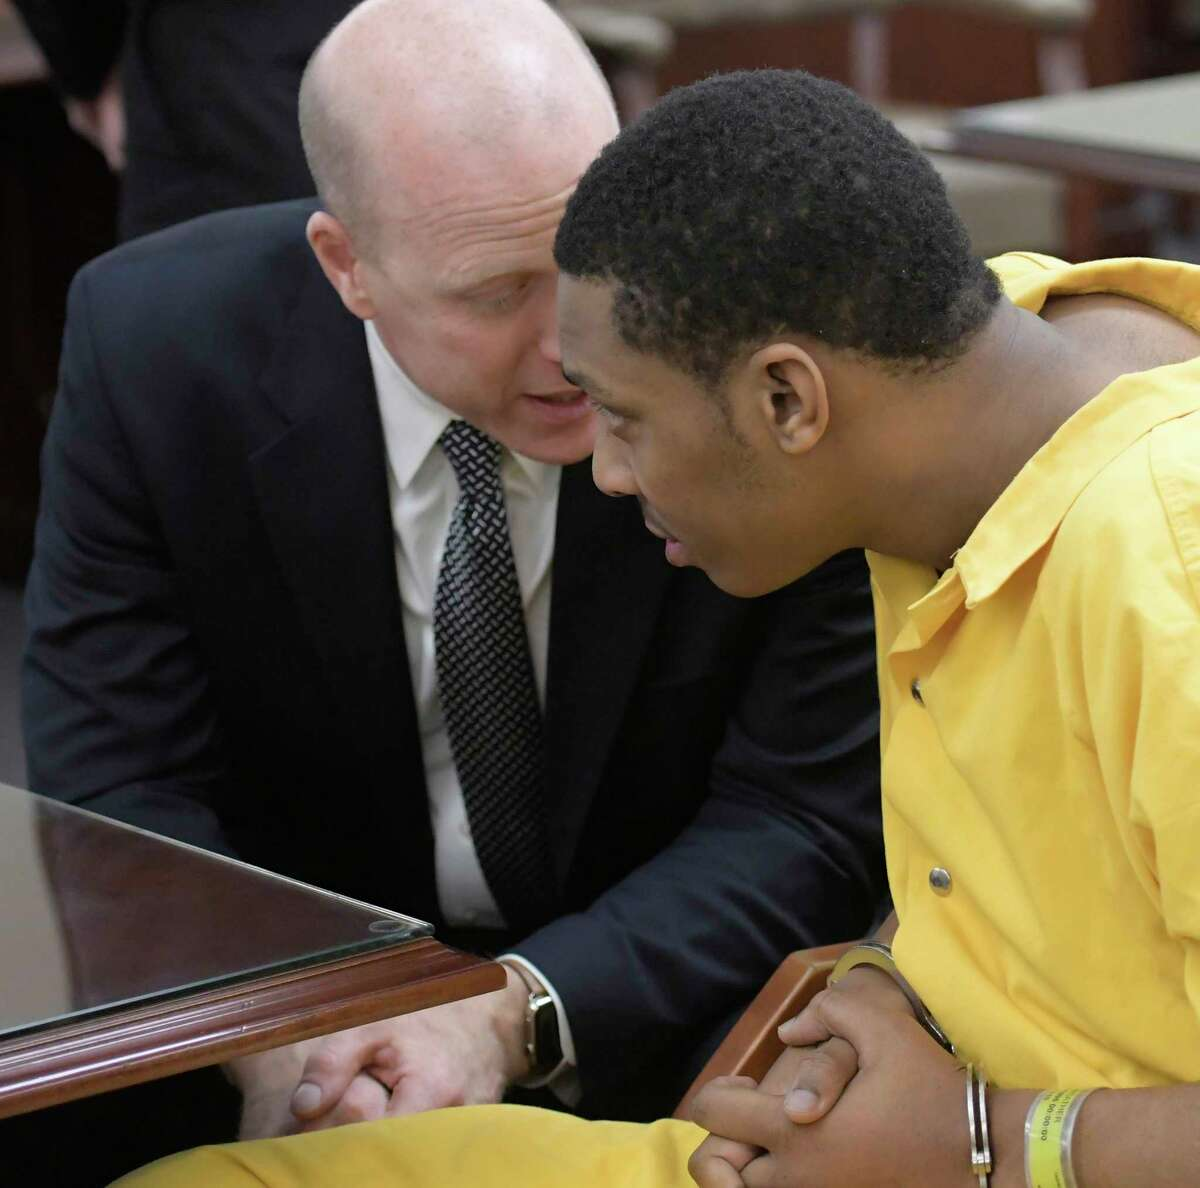 Tasheem Maeweather, right, speaks with his attorney Lee Kindlon Monday Dec. 5, 2016 during his arraignment in Albany County Court in Albany, N.Y. on charges involved with the alleged shooting at Crossgates Mall in November in Albany, N.Y. (Skip Dickstein/Times Union)